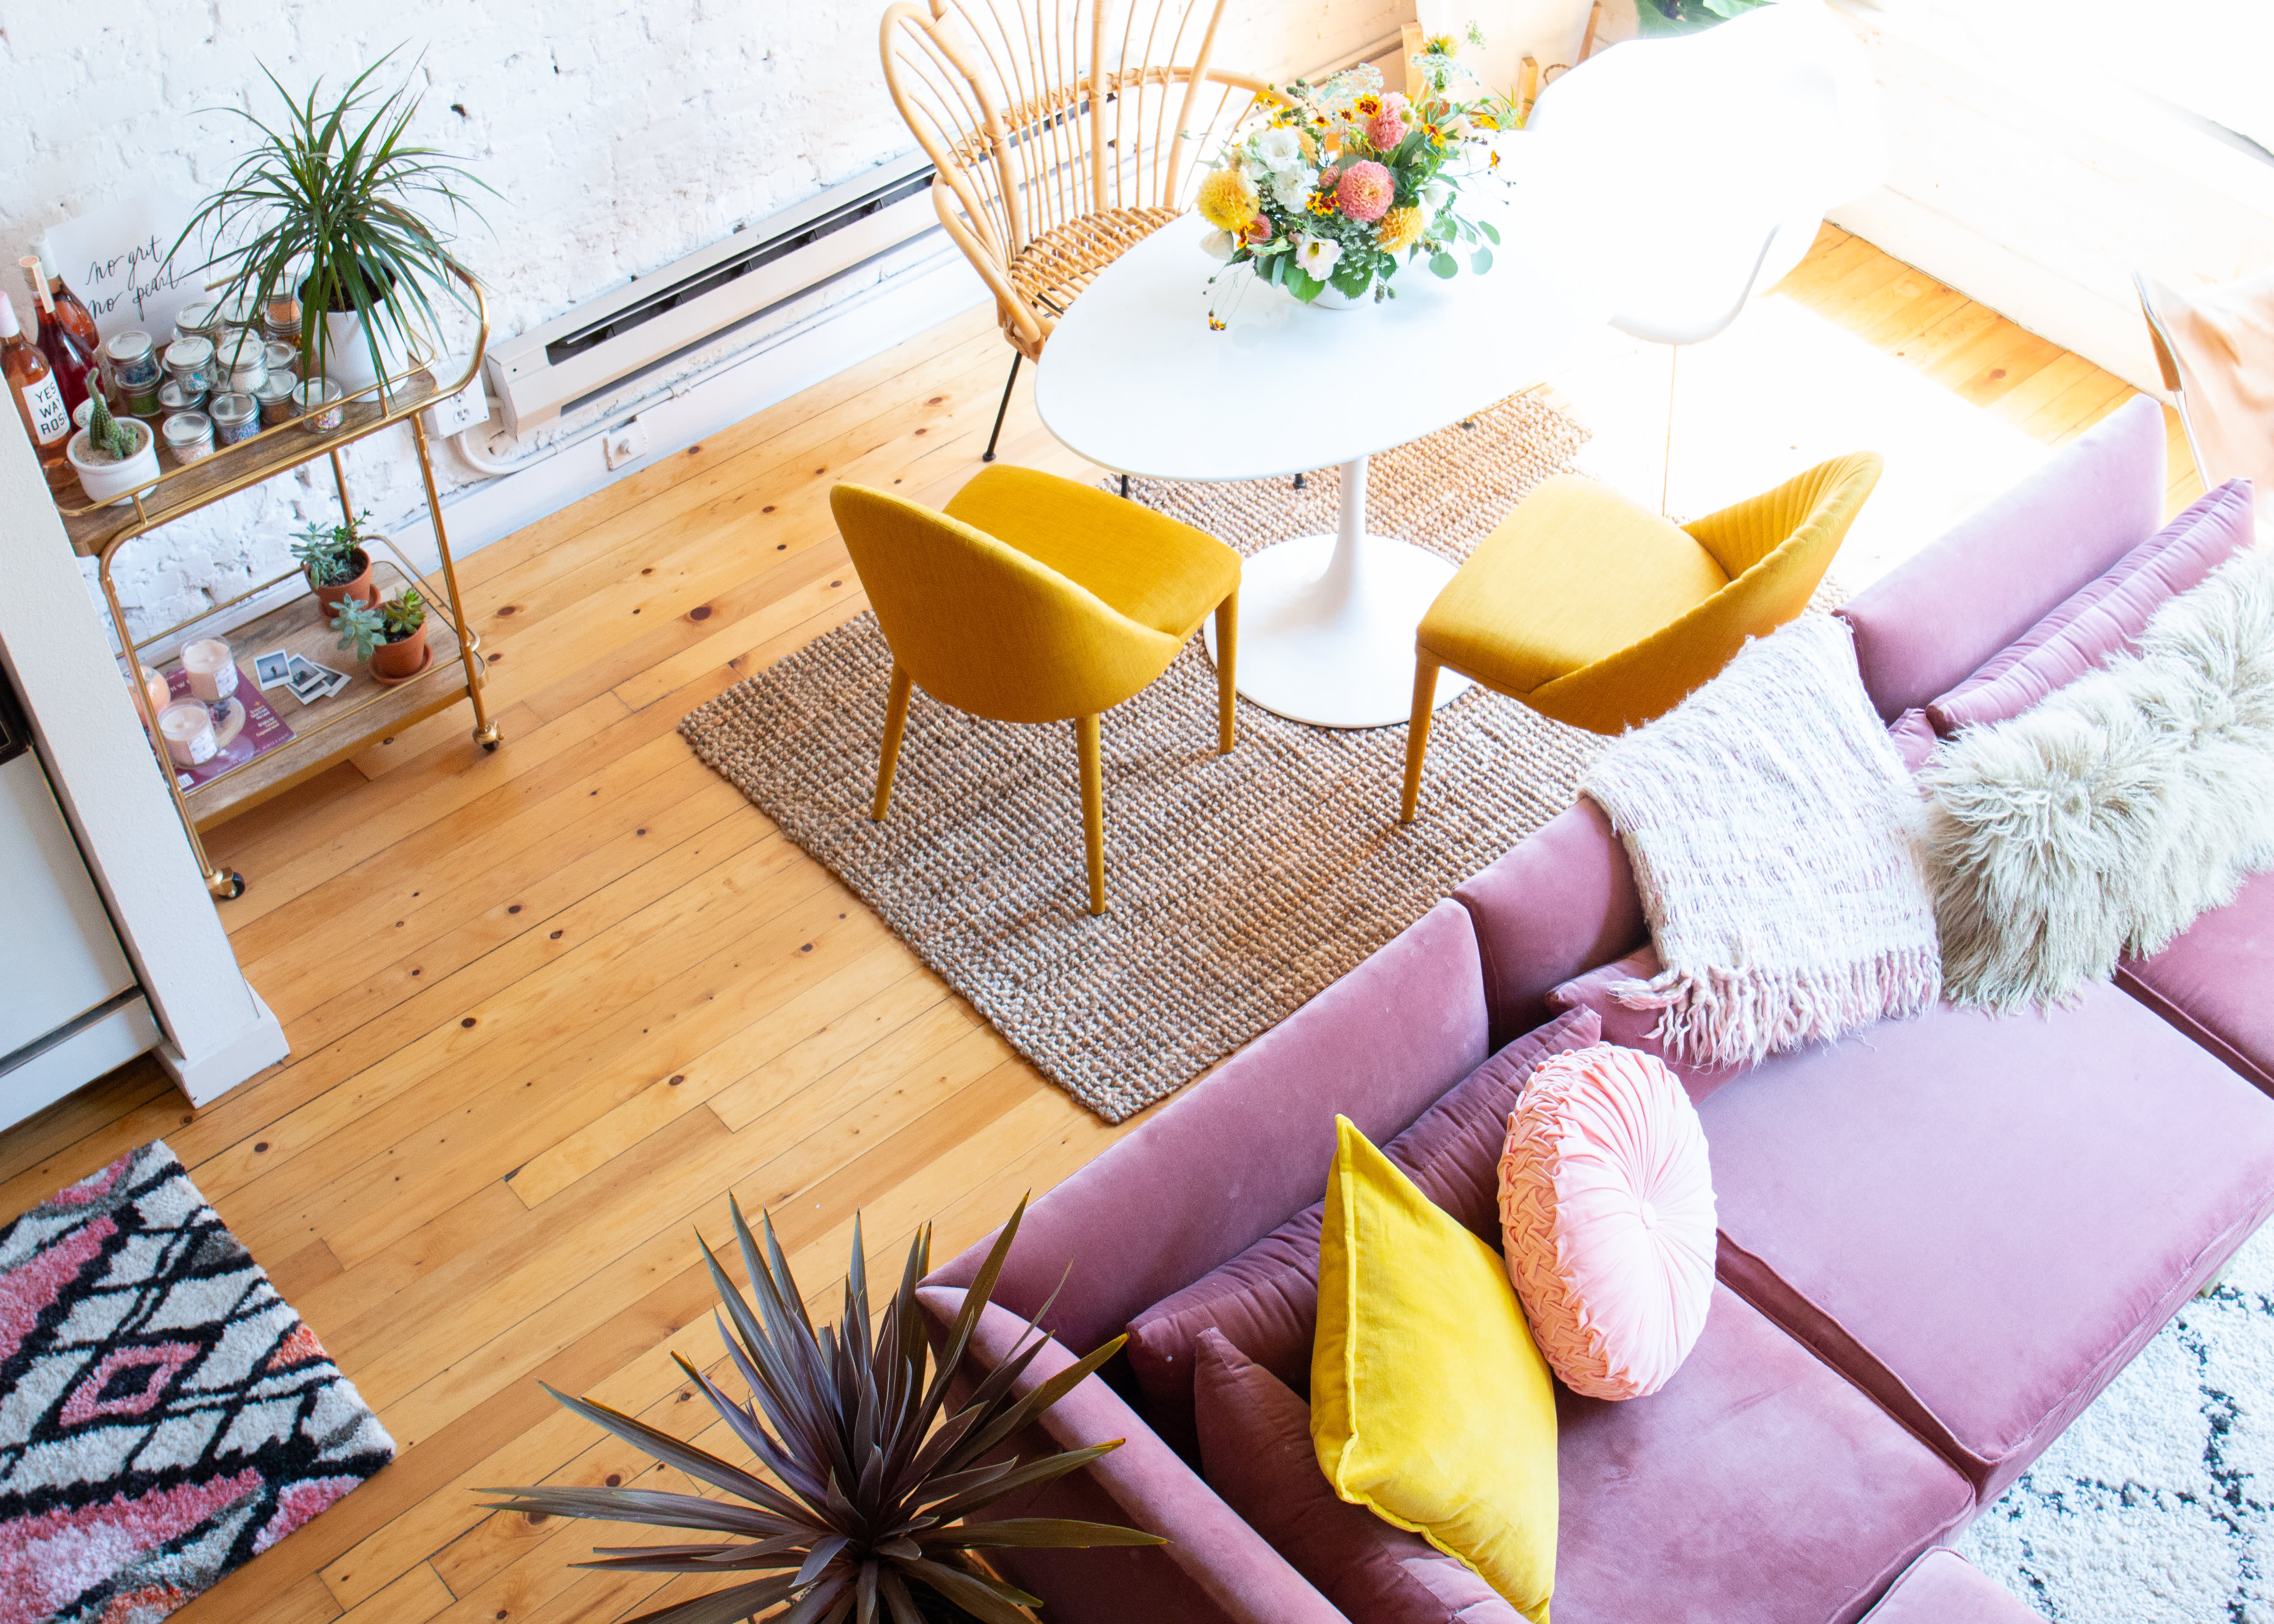 How to decorate a small space the right way according to interior designers